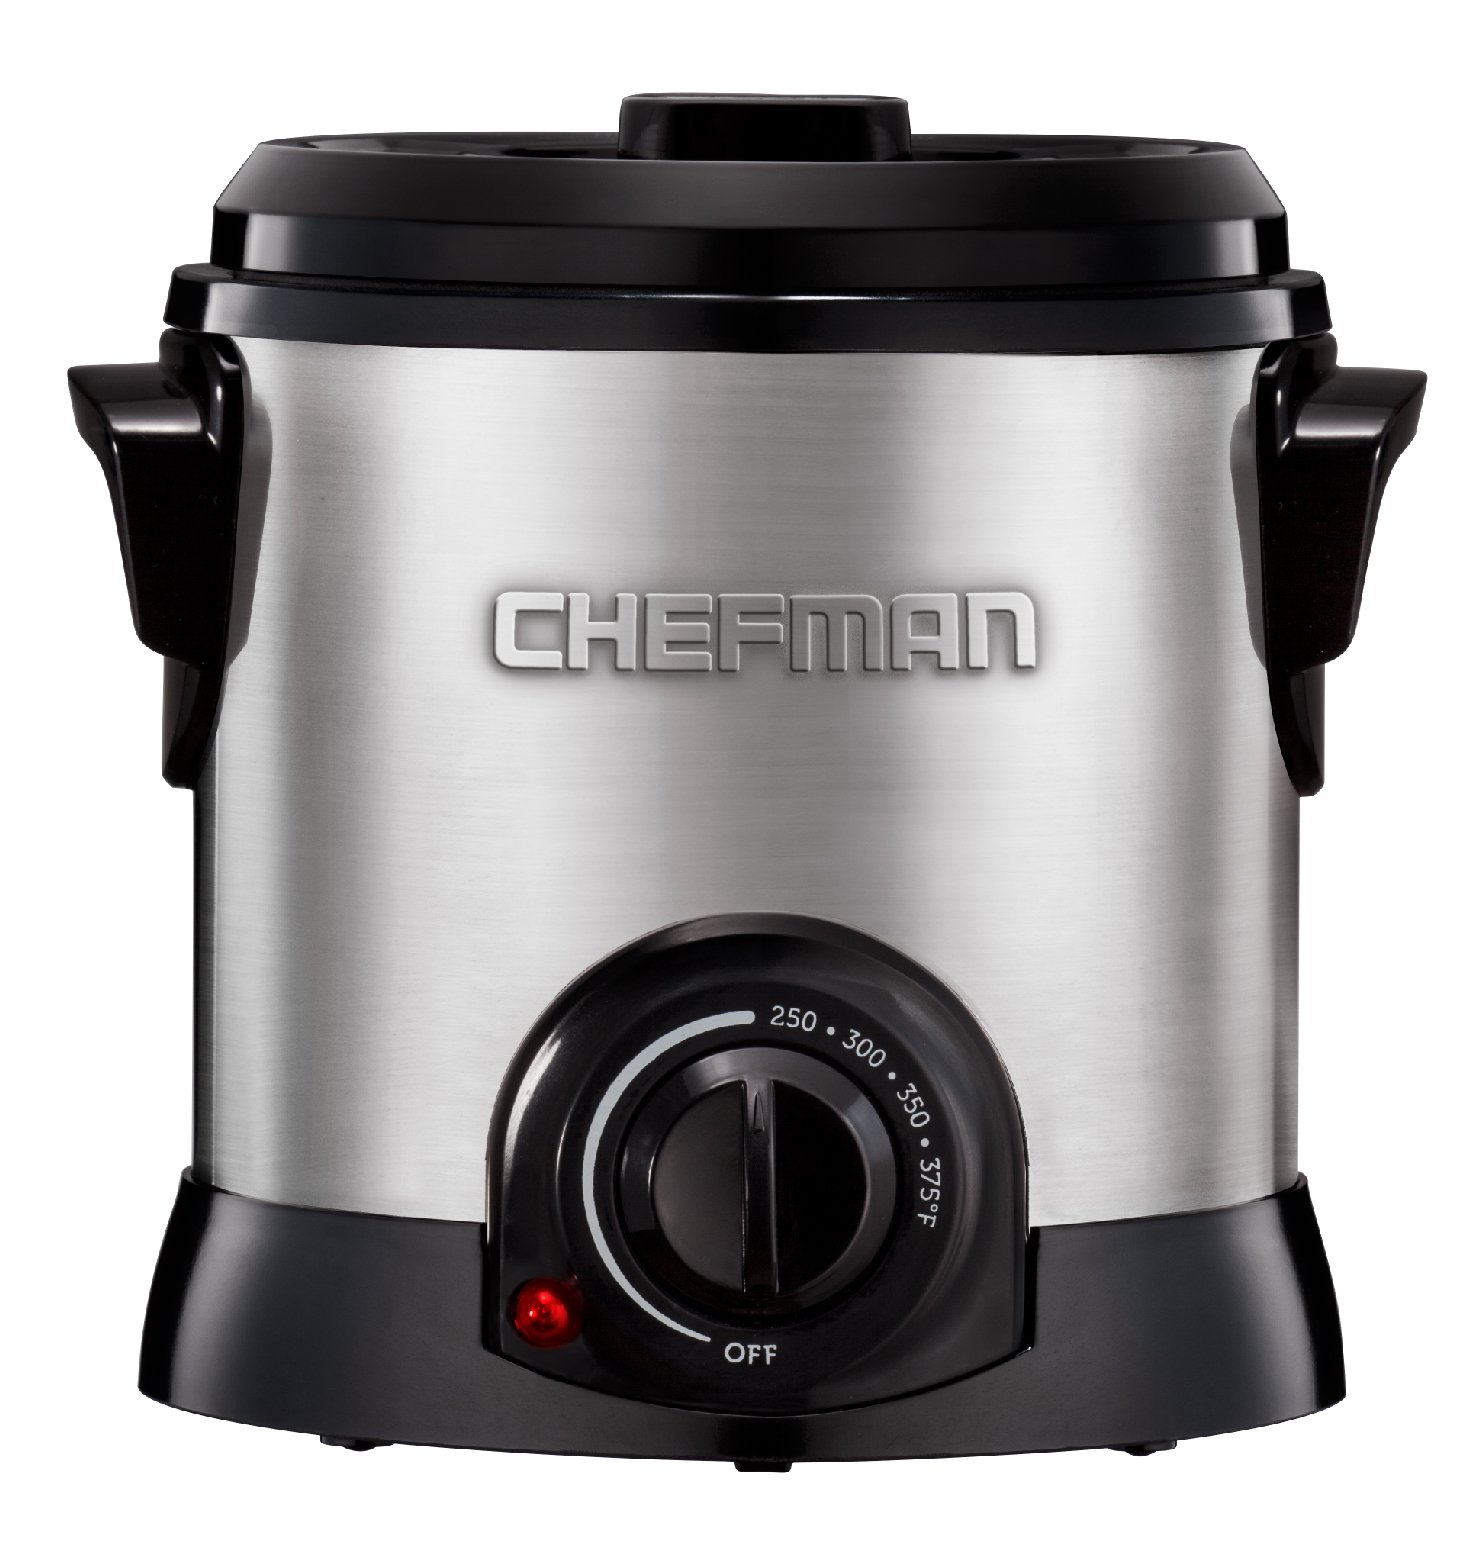 Chefman Deep Fryer Fry Guy with Basket / Strainer for Home, Easy-to-Clean Non-Stick Coating and Cool-to-Touch Stainless Steel Exterior, Rotary Knob for Adjusting the Temperature, Silver